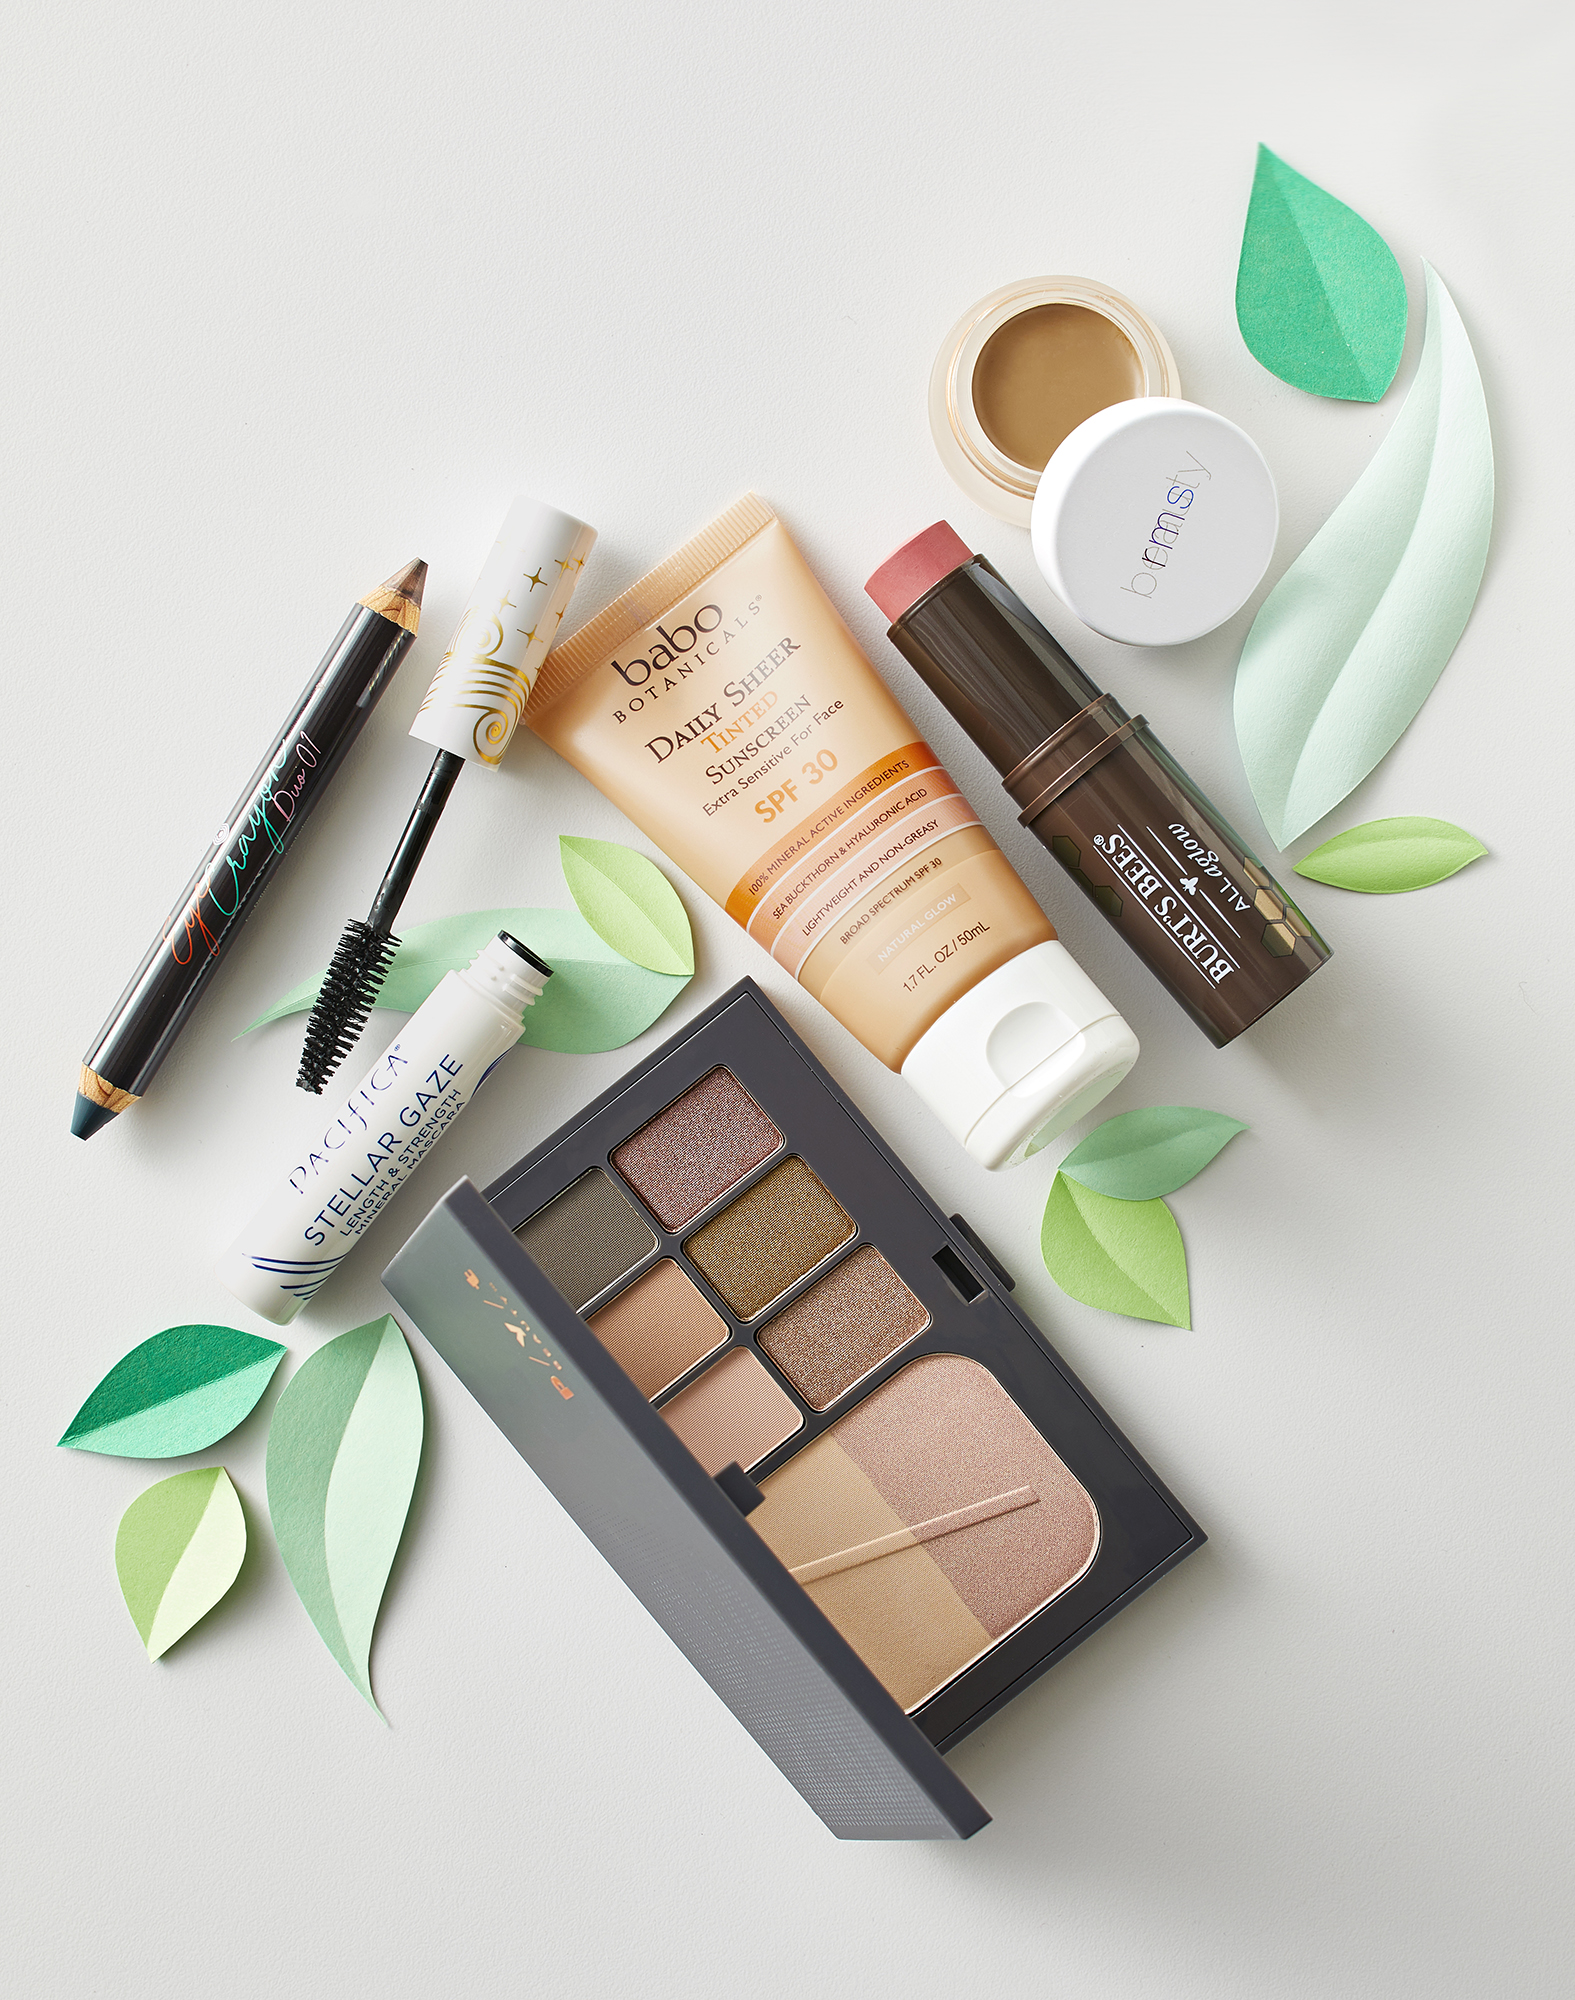 organic and clean makeup products on a table